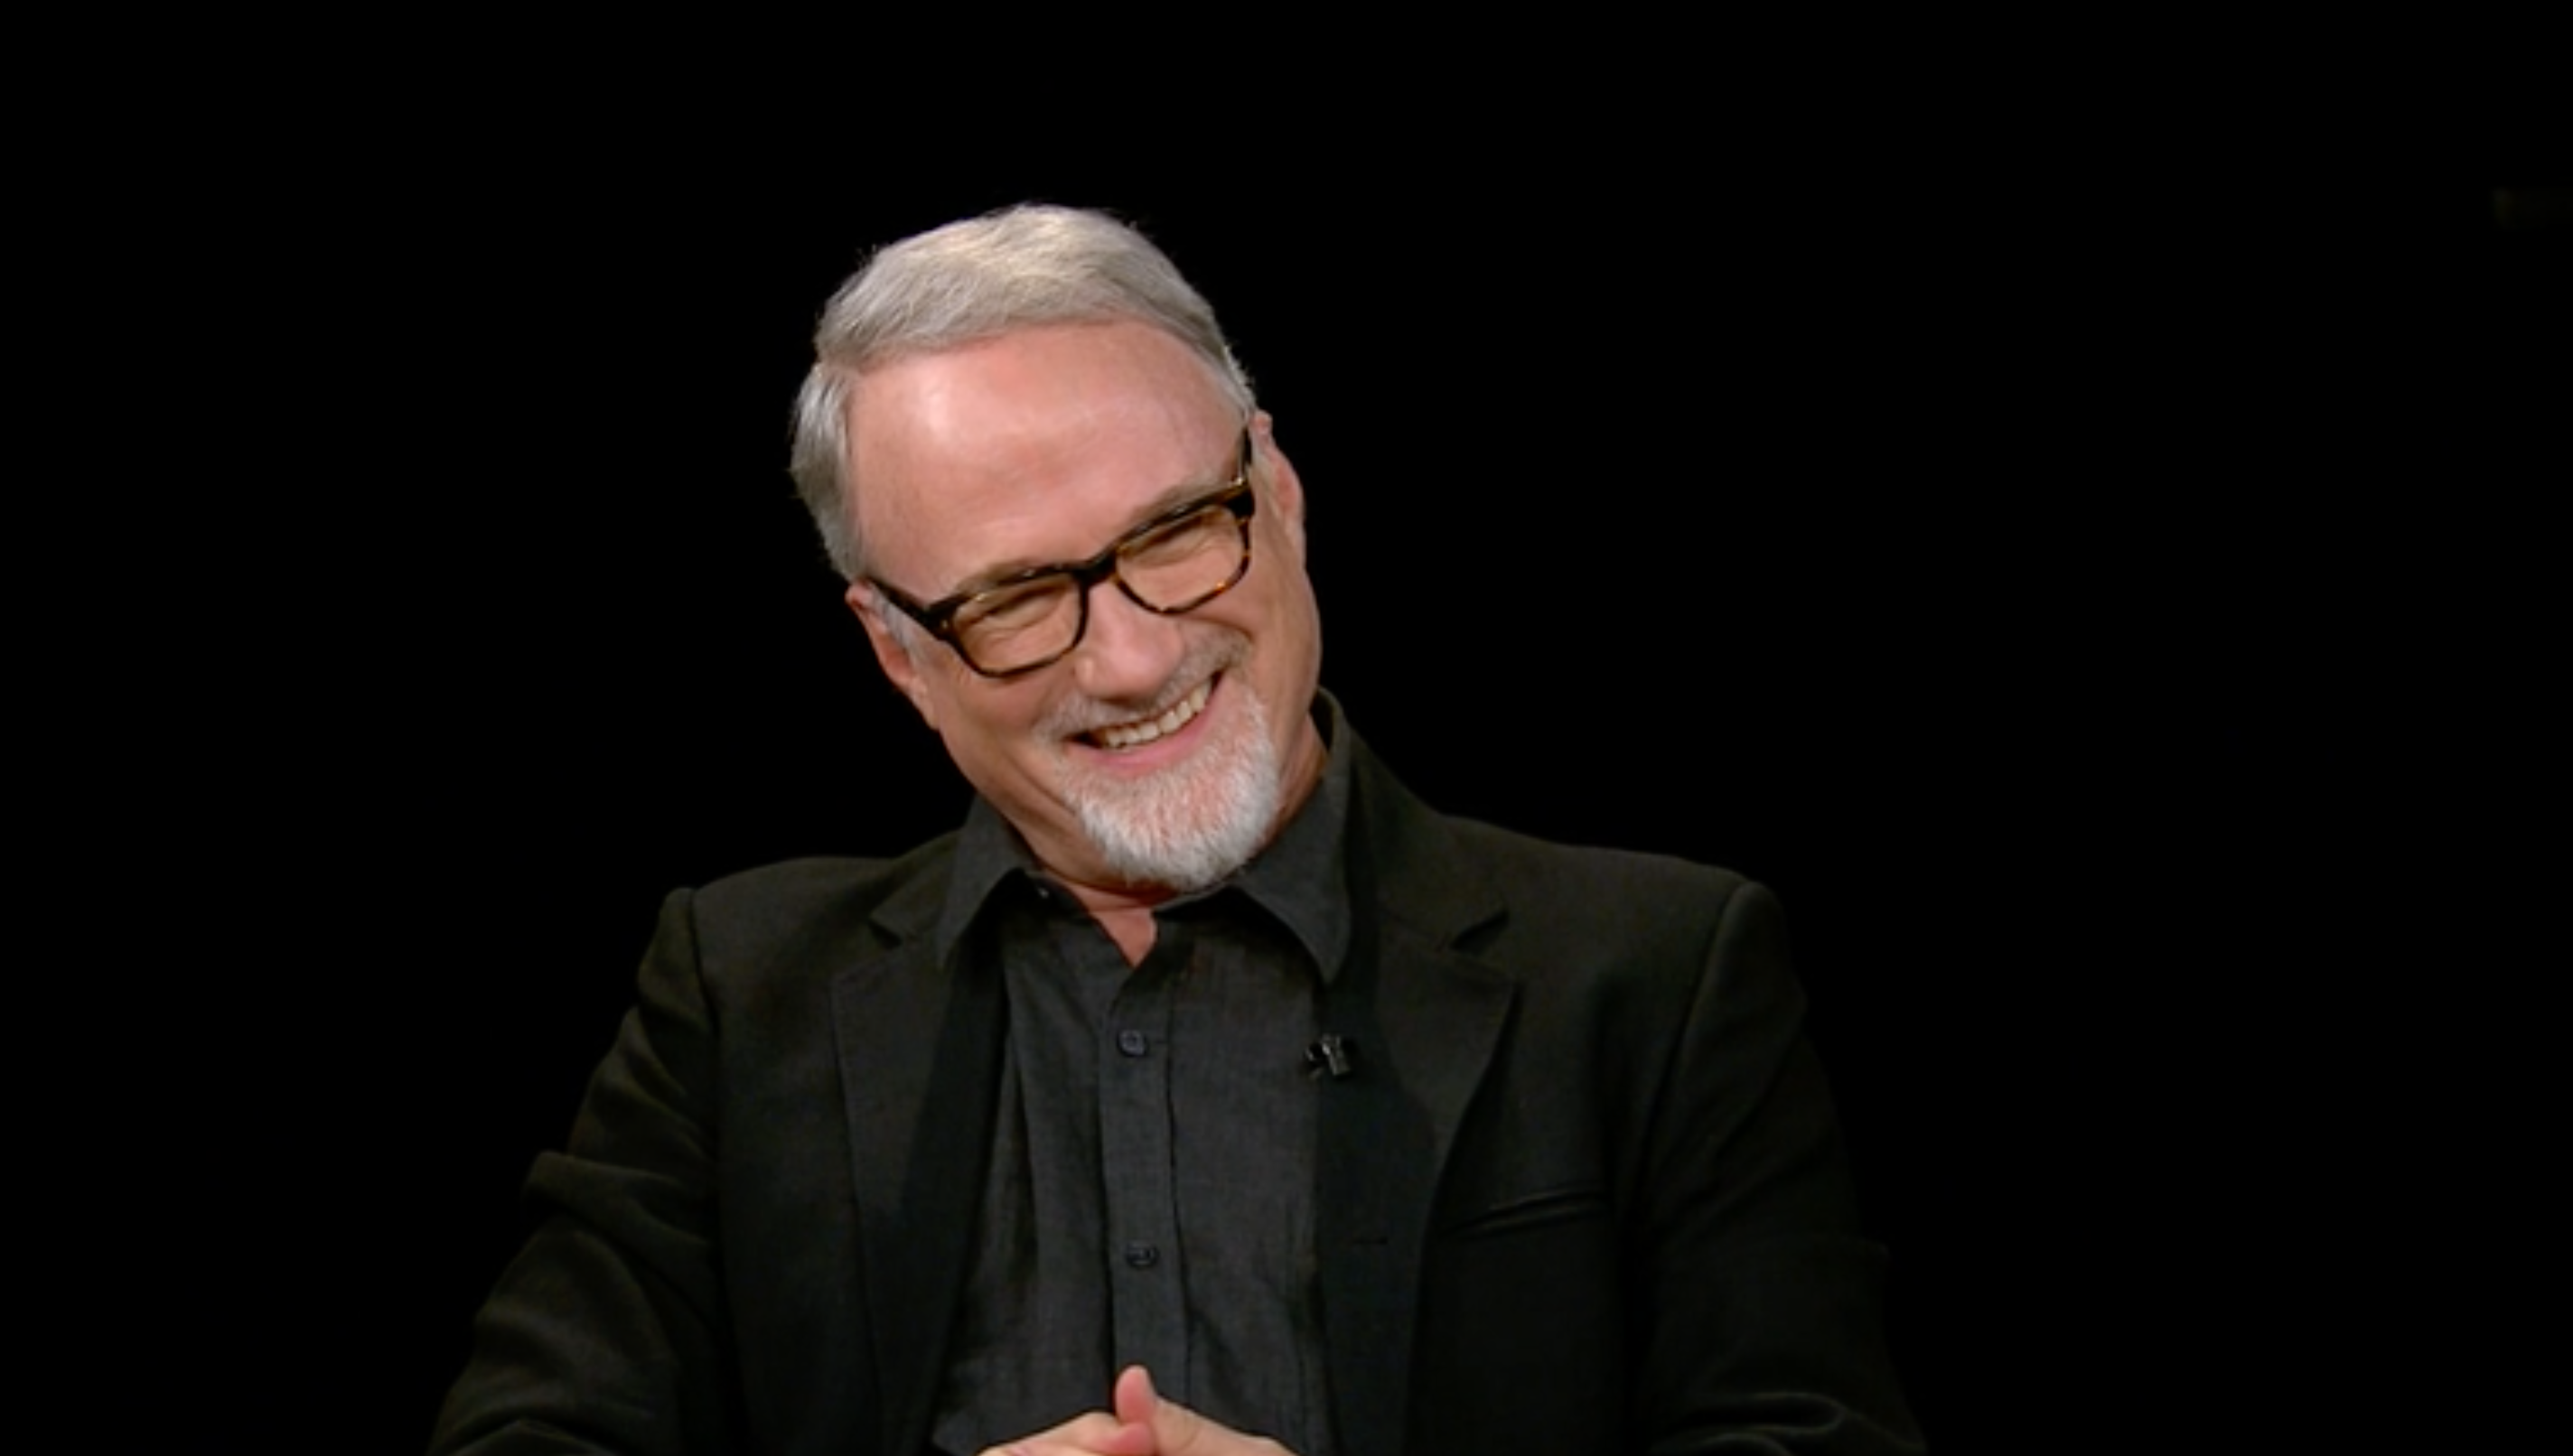 david fincher on mindhunter serial killers amp learning